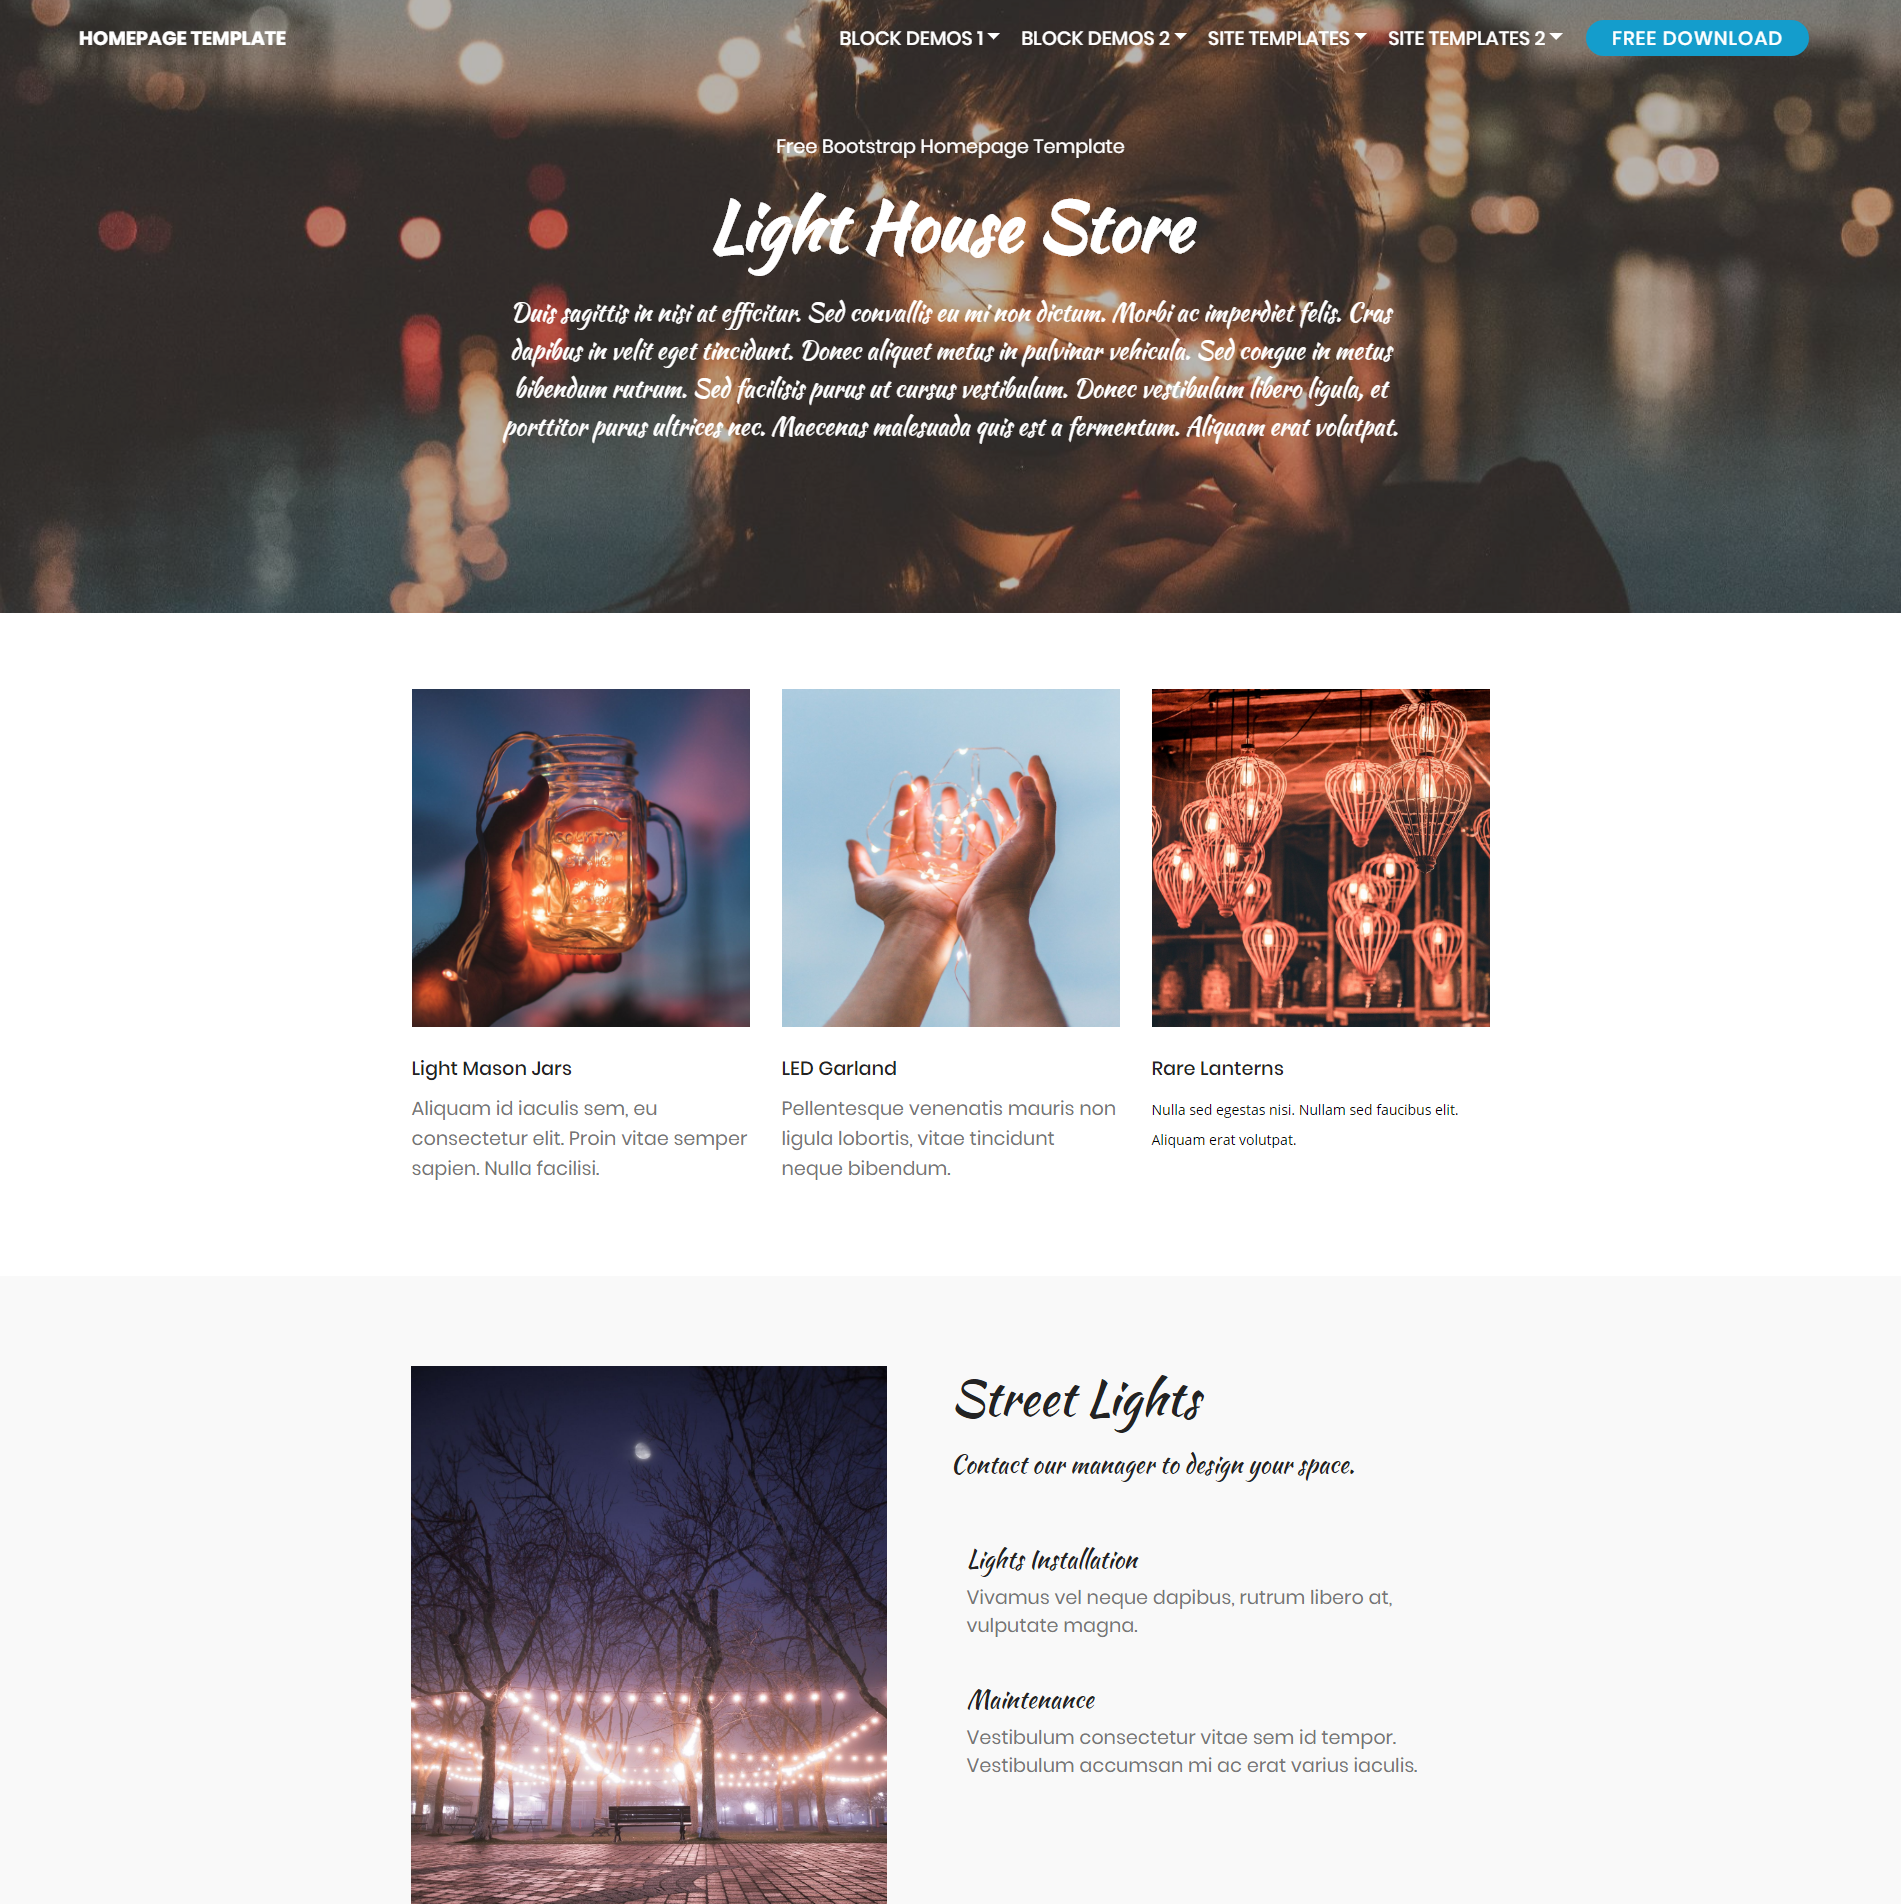 HTML5 Bootstrap Homepage Templates